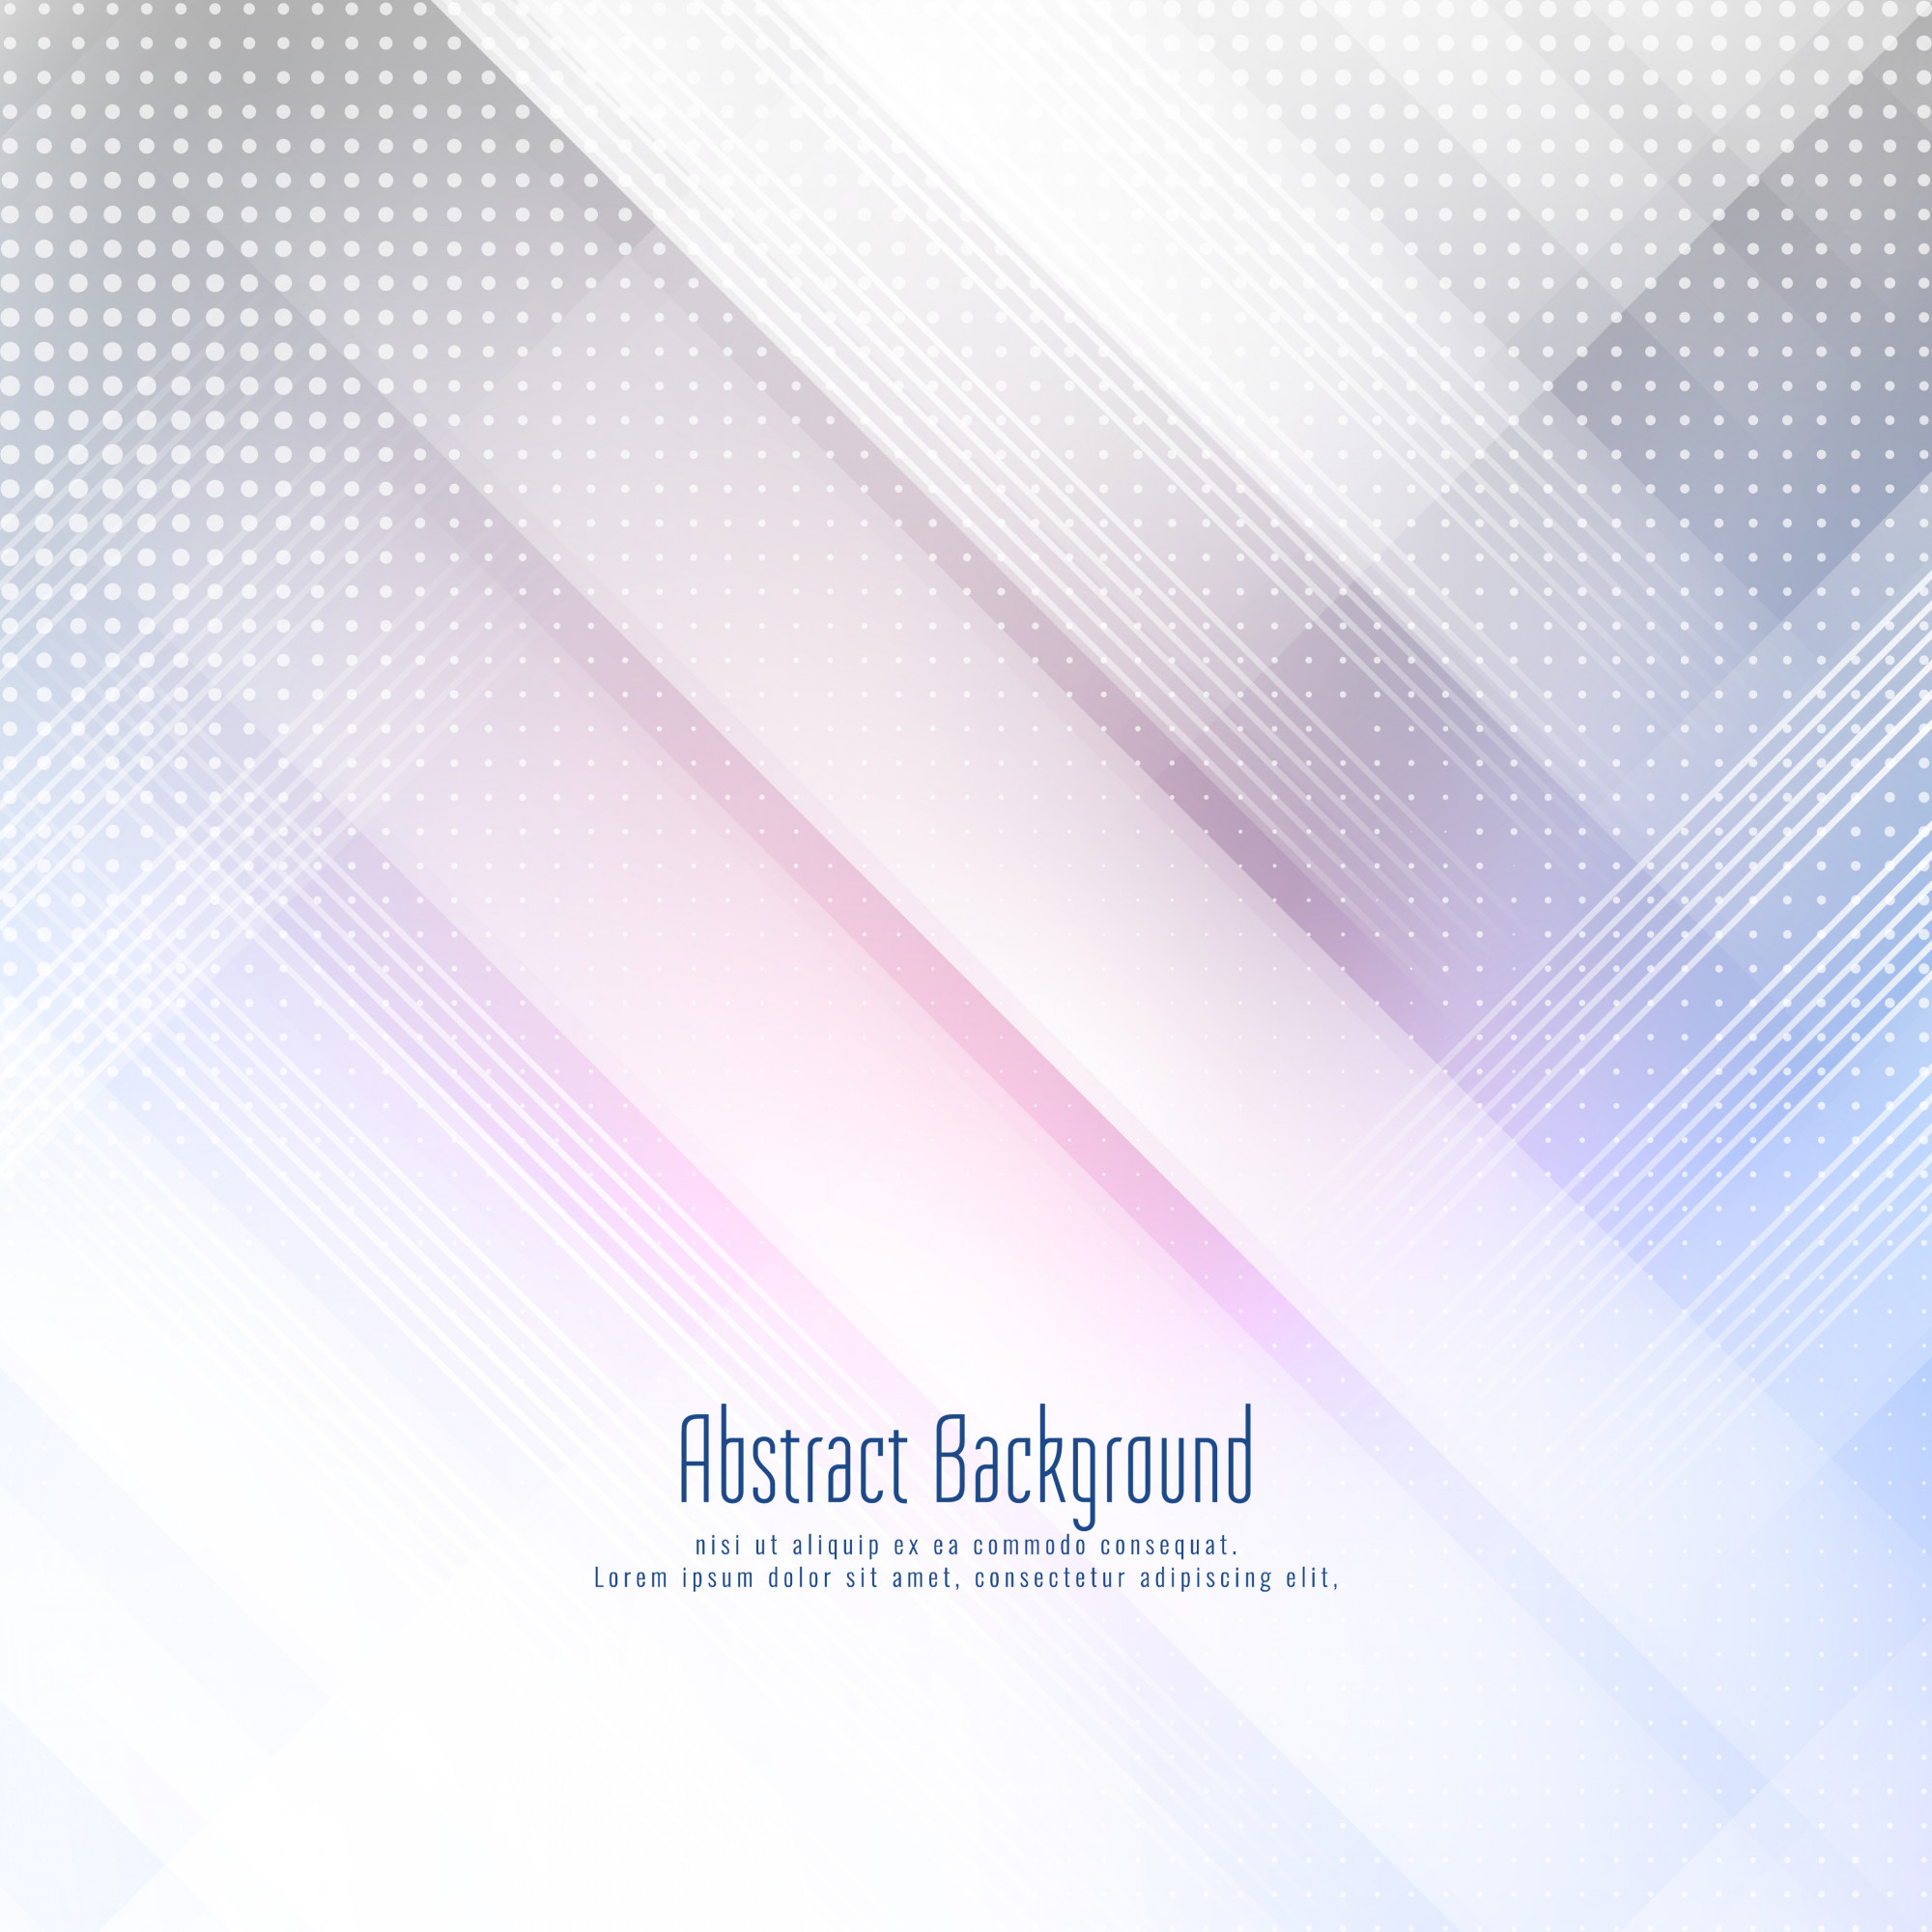 Abstract modern futuristic geometric background